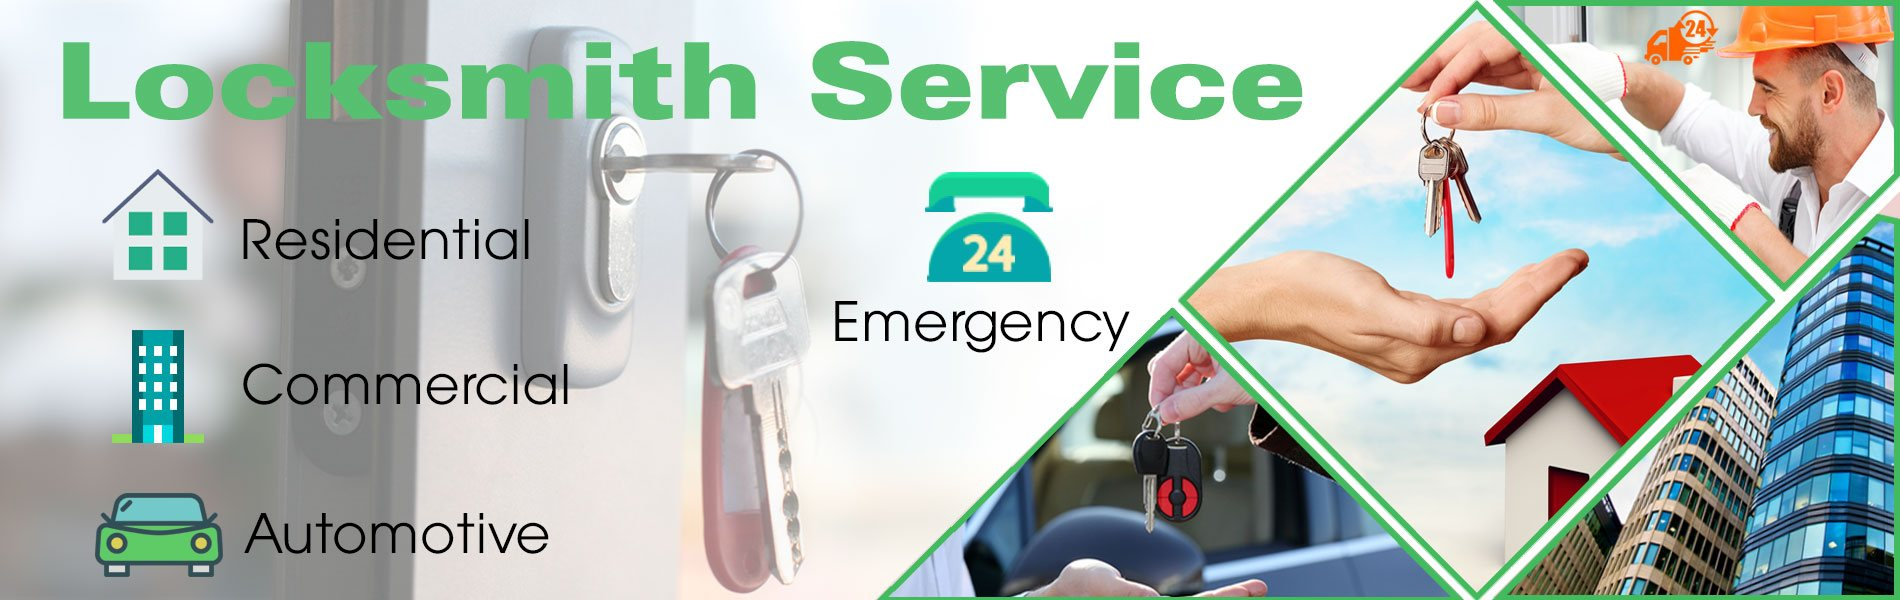 Lock Safe Services Baltimore, MD 410-941-7019